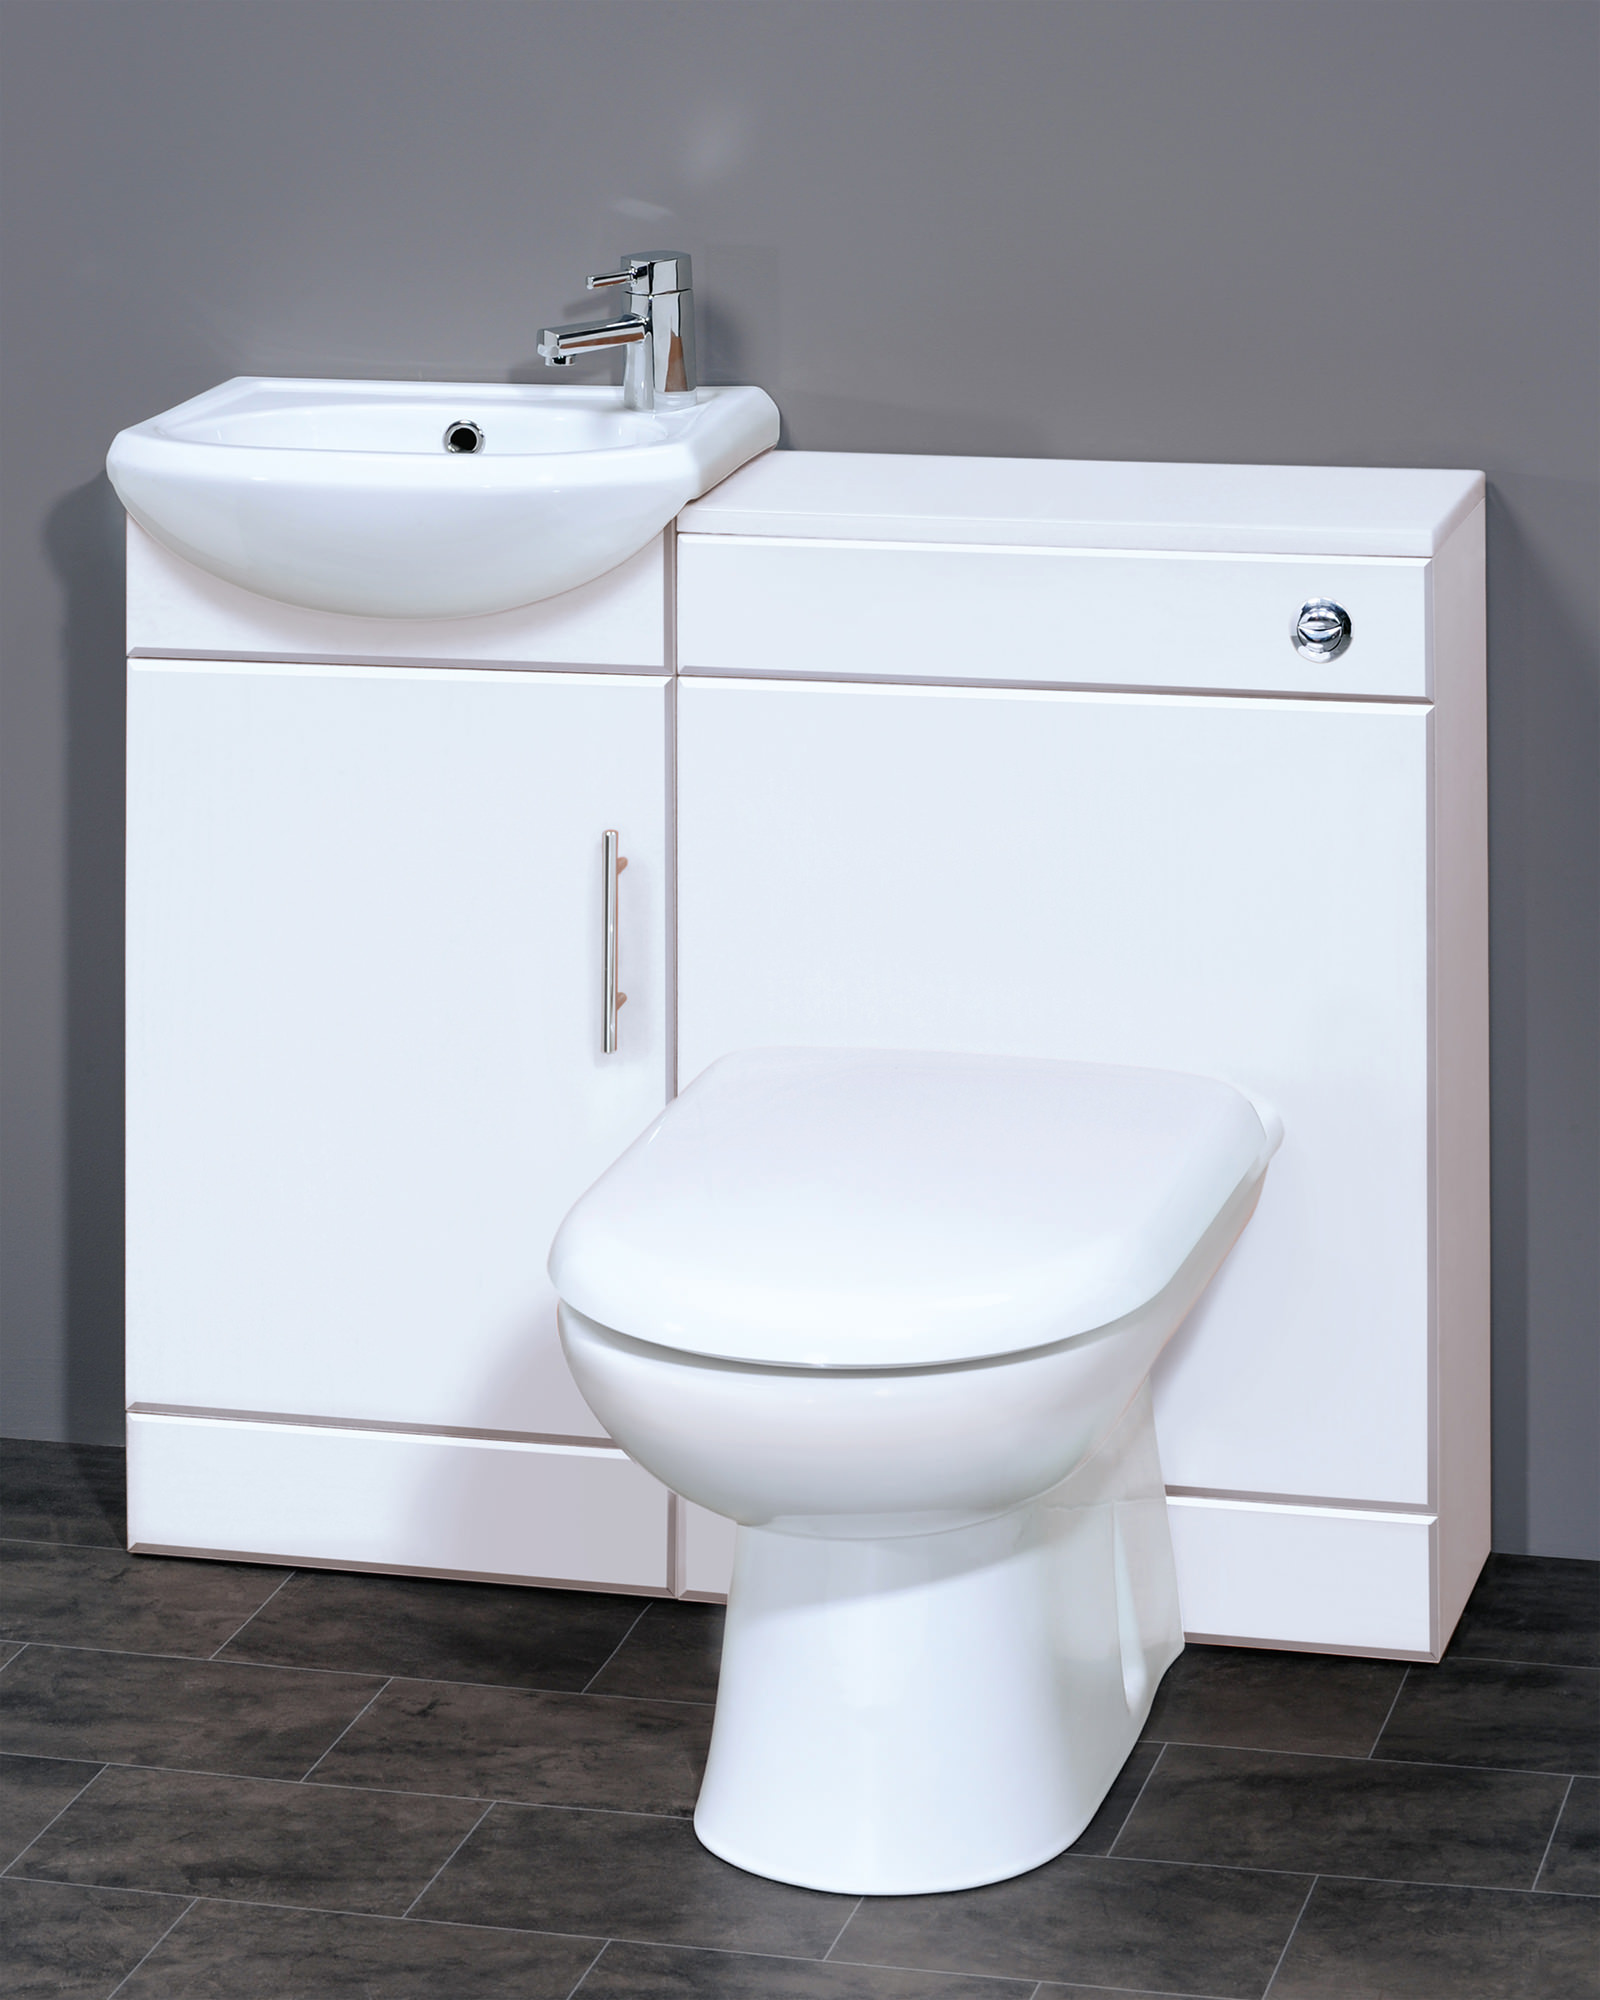 Fantastic Kensington White Bathroom Furniture Sets And Ideas Cabinets Storage